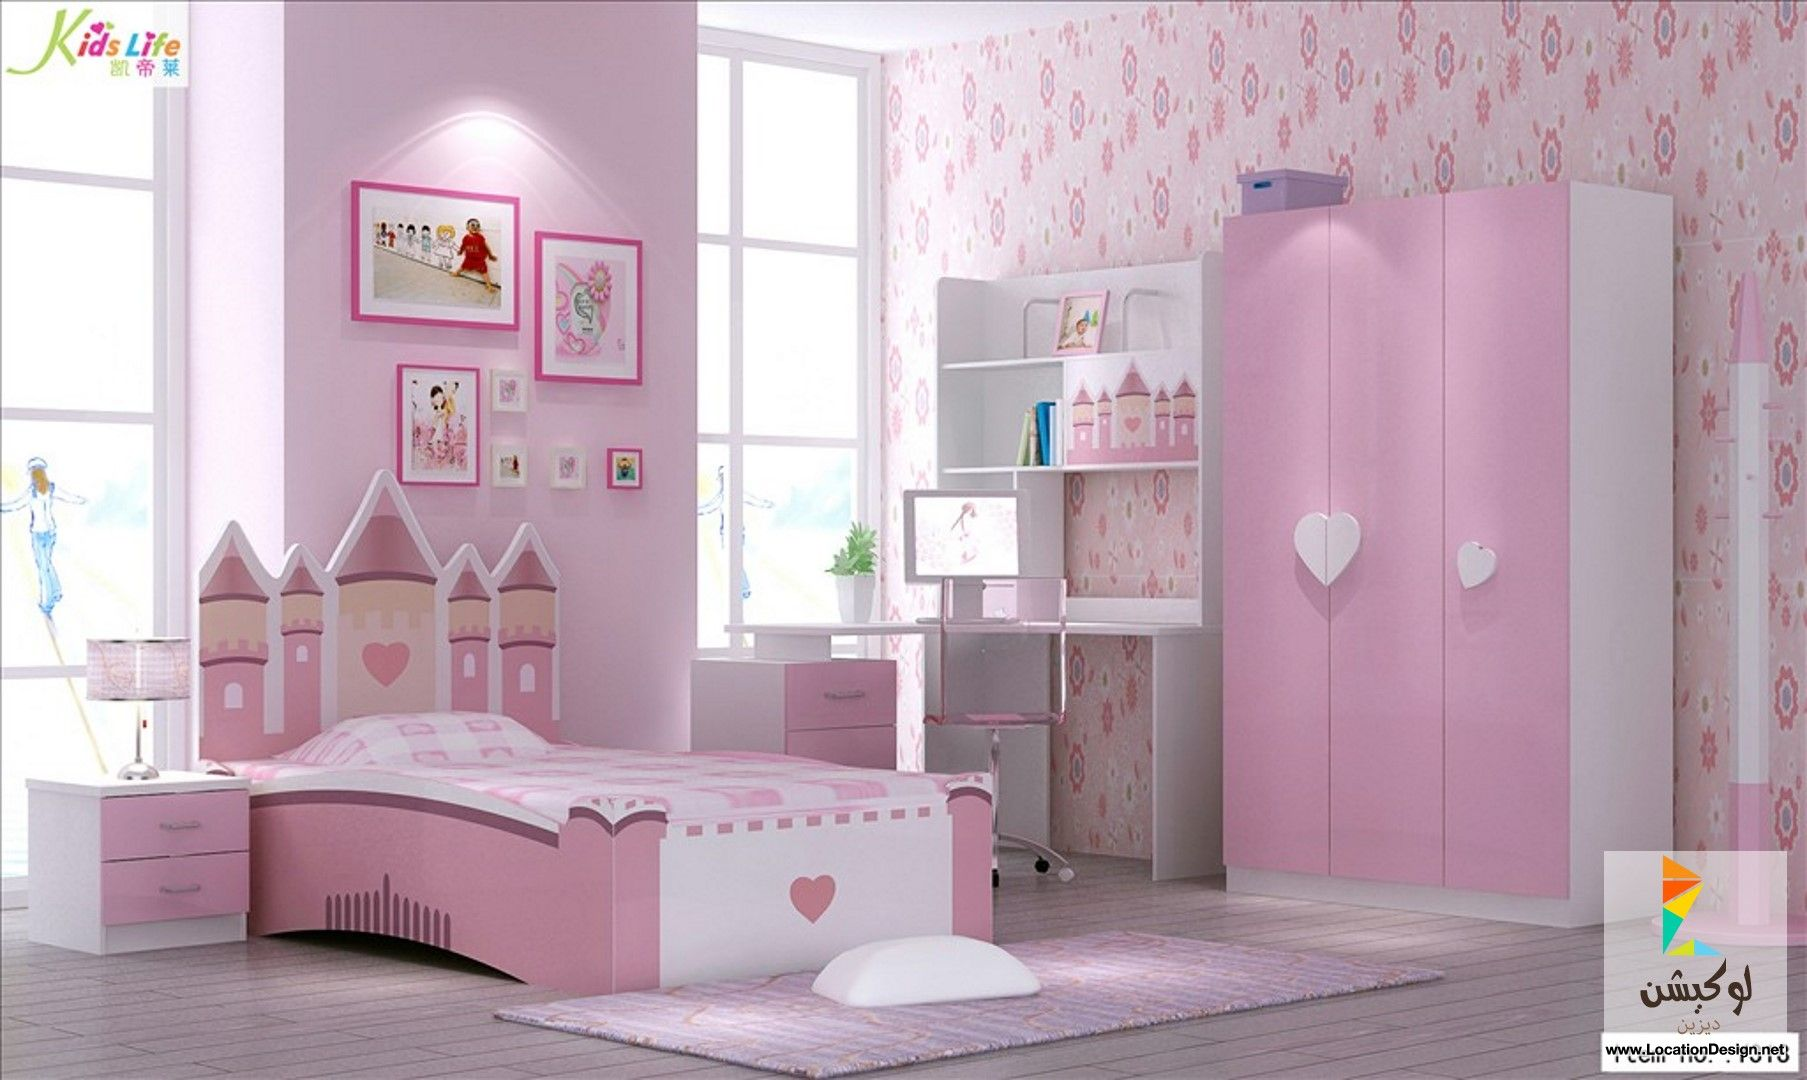 Bedroom sets for girls pink - China Pink Castle Kids Bedroom Furniture Sets Find Details About China Art Furniture Acrylic Chair From Pink Castle Kids Bedroom Furniture Sets Foshan